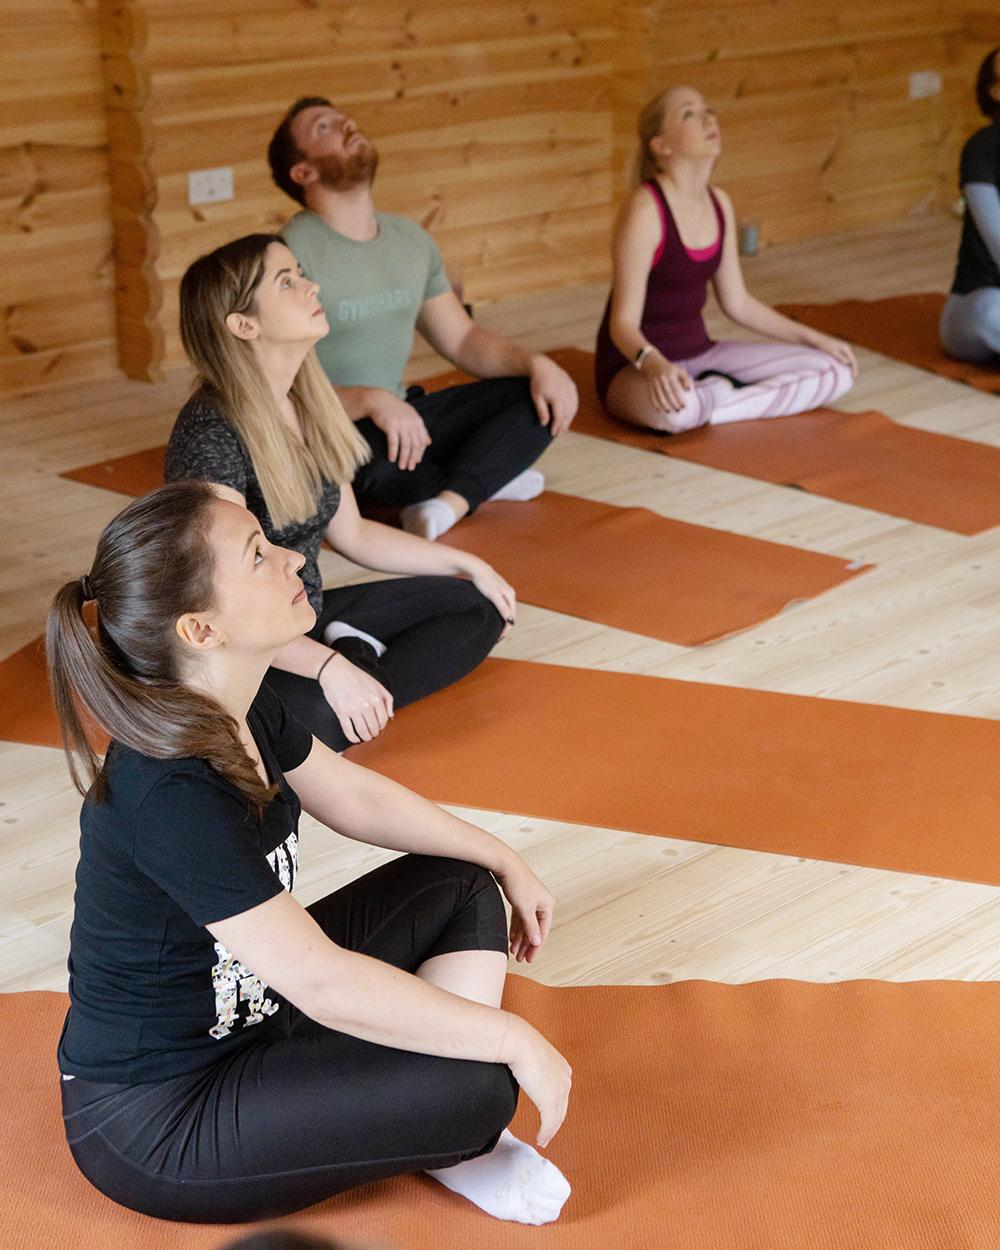 Fullers Hill Retreat Yoga and Mindfulness - our group doing yoga